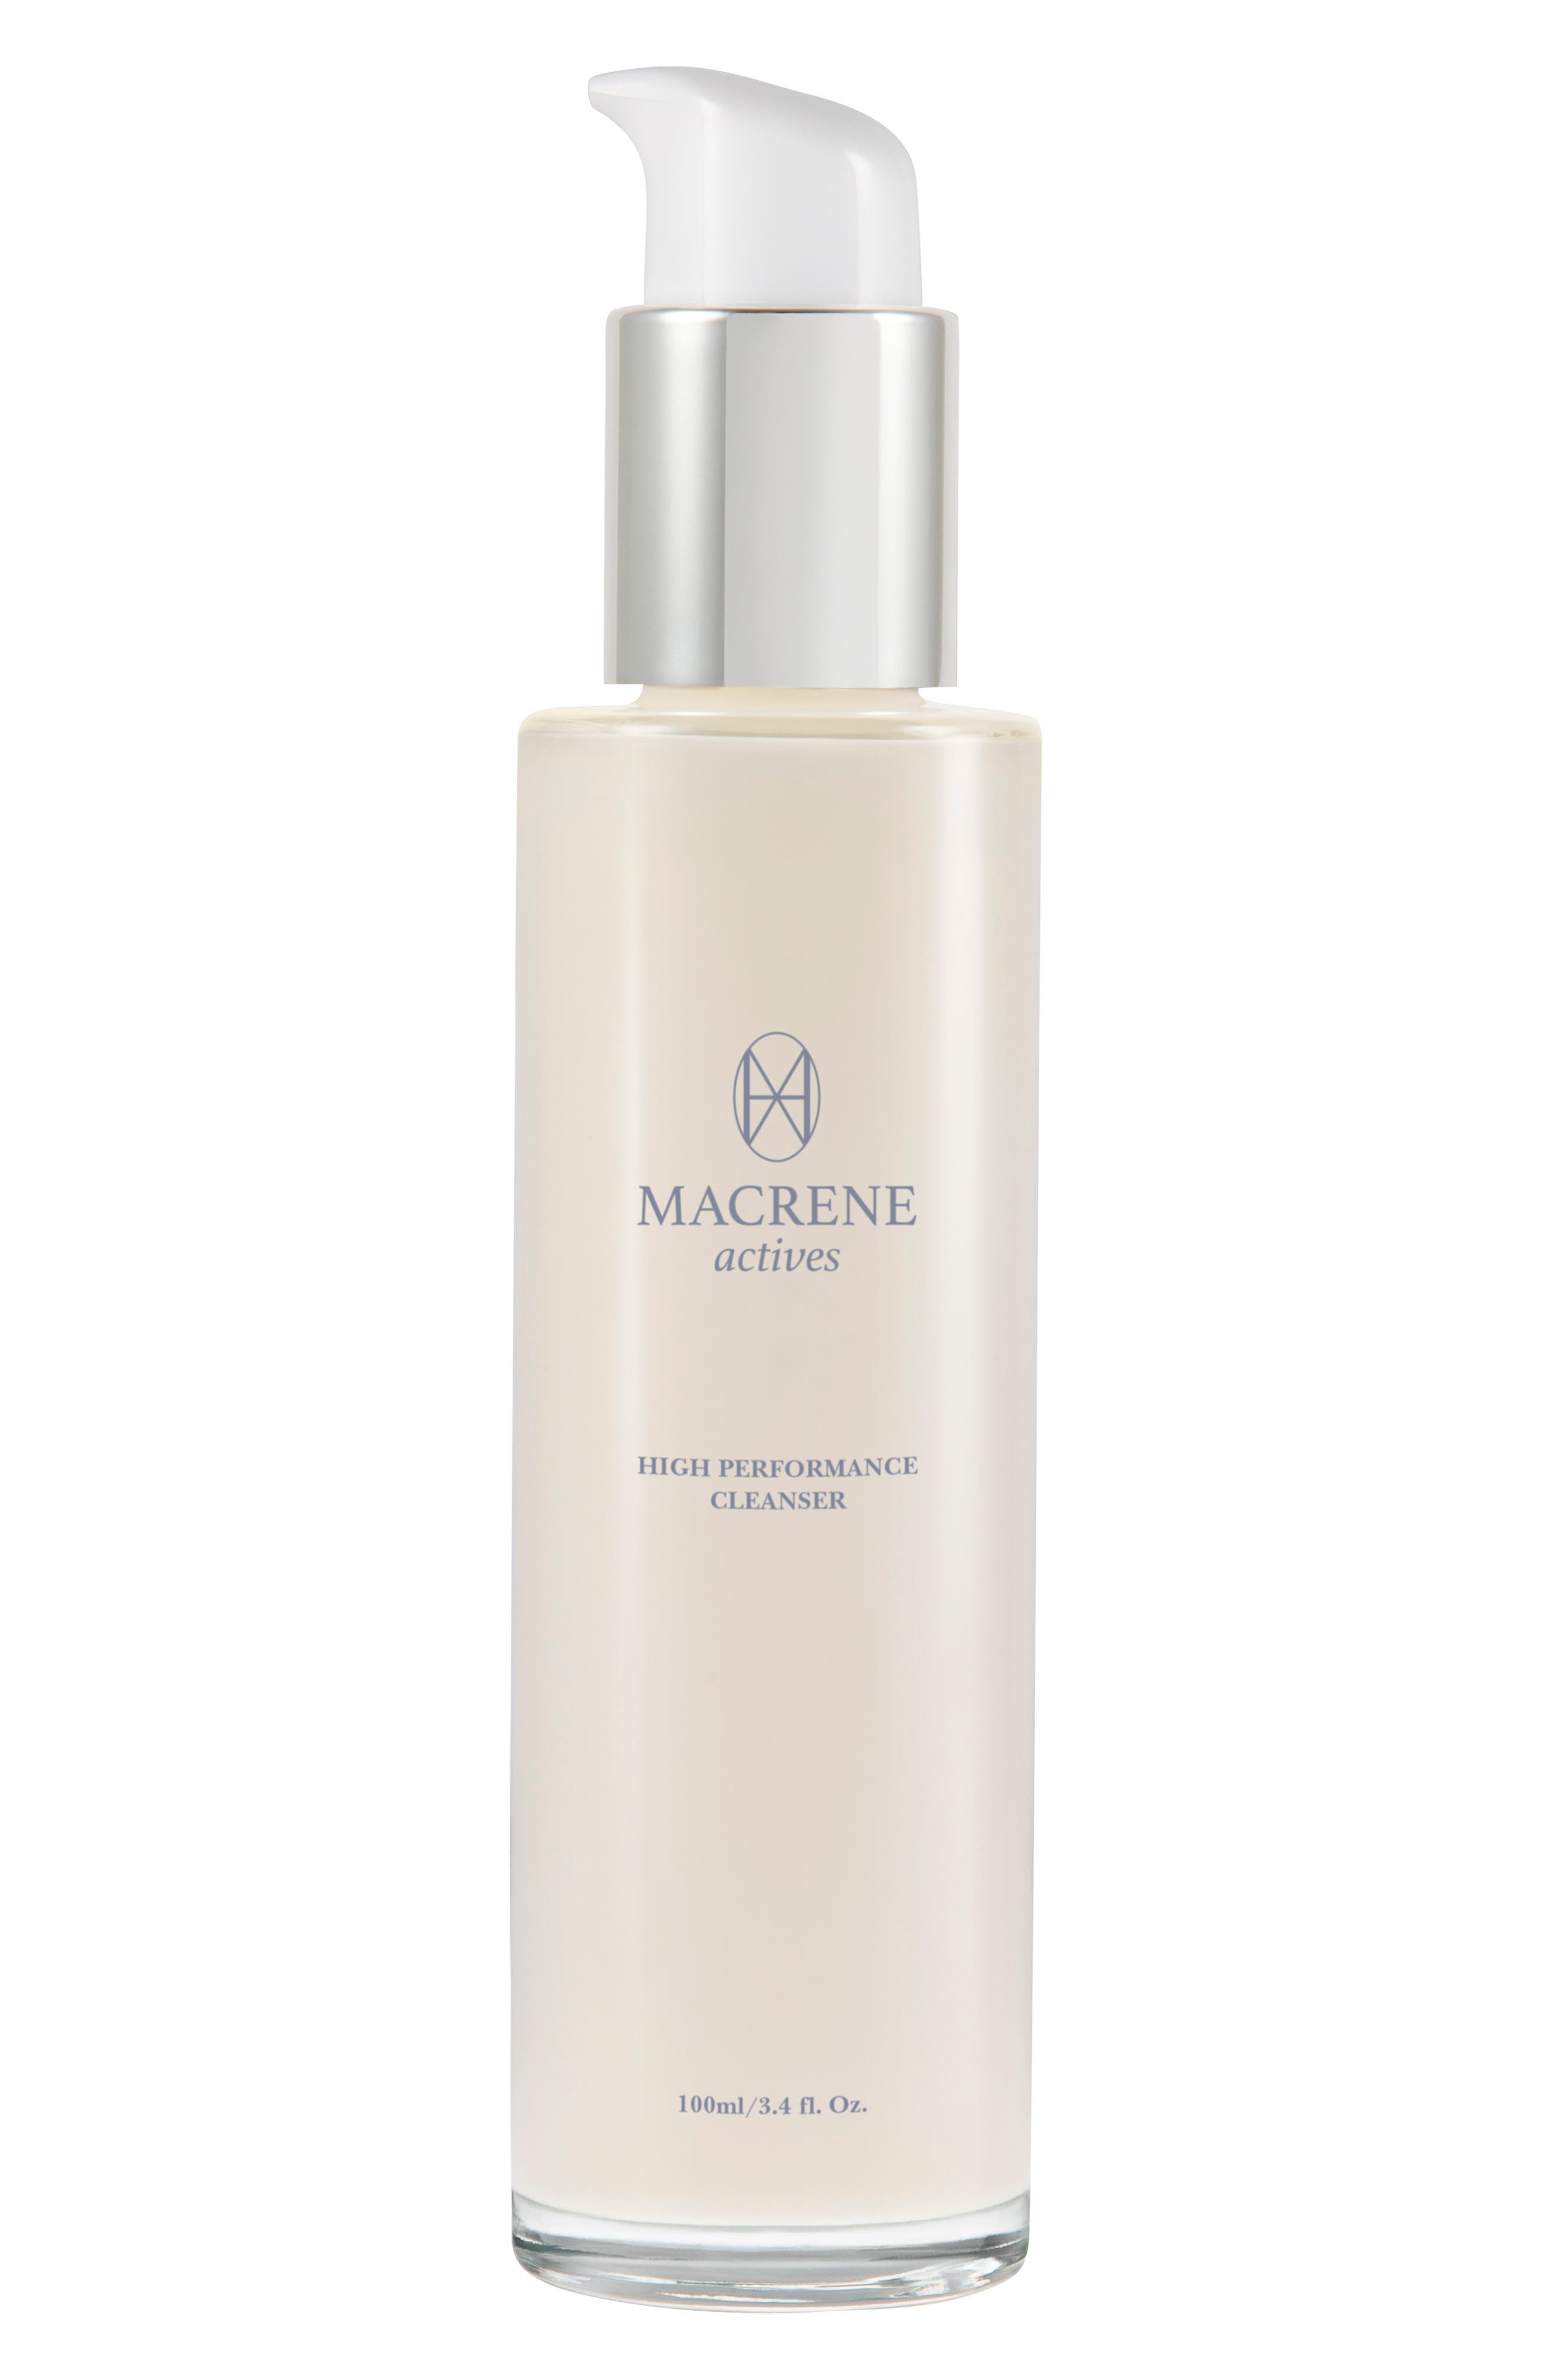 High Performance Cleansing Treatment